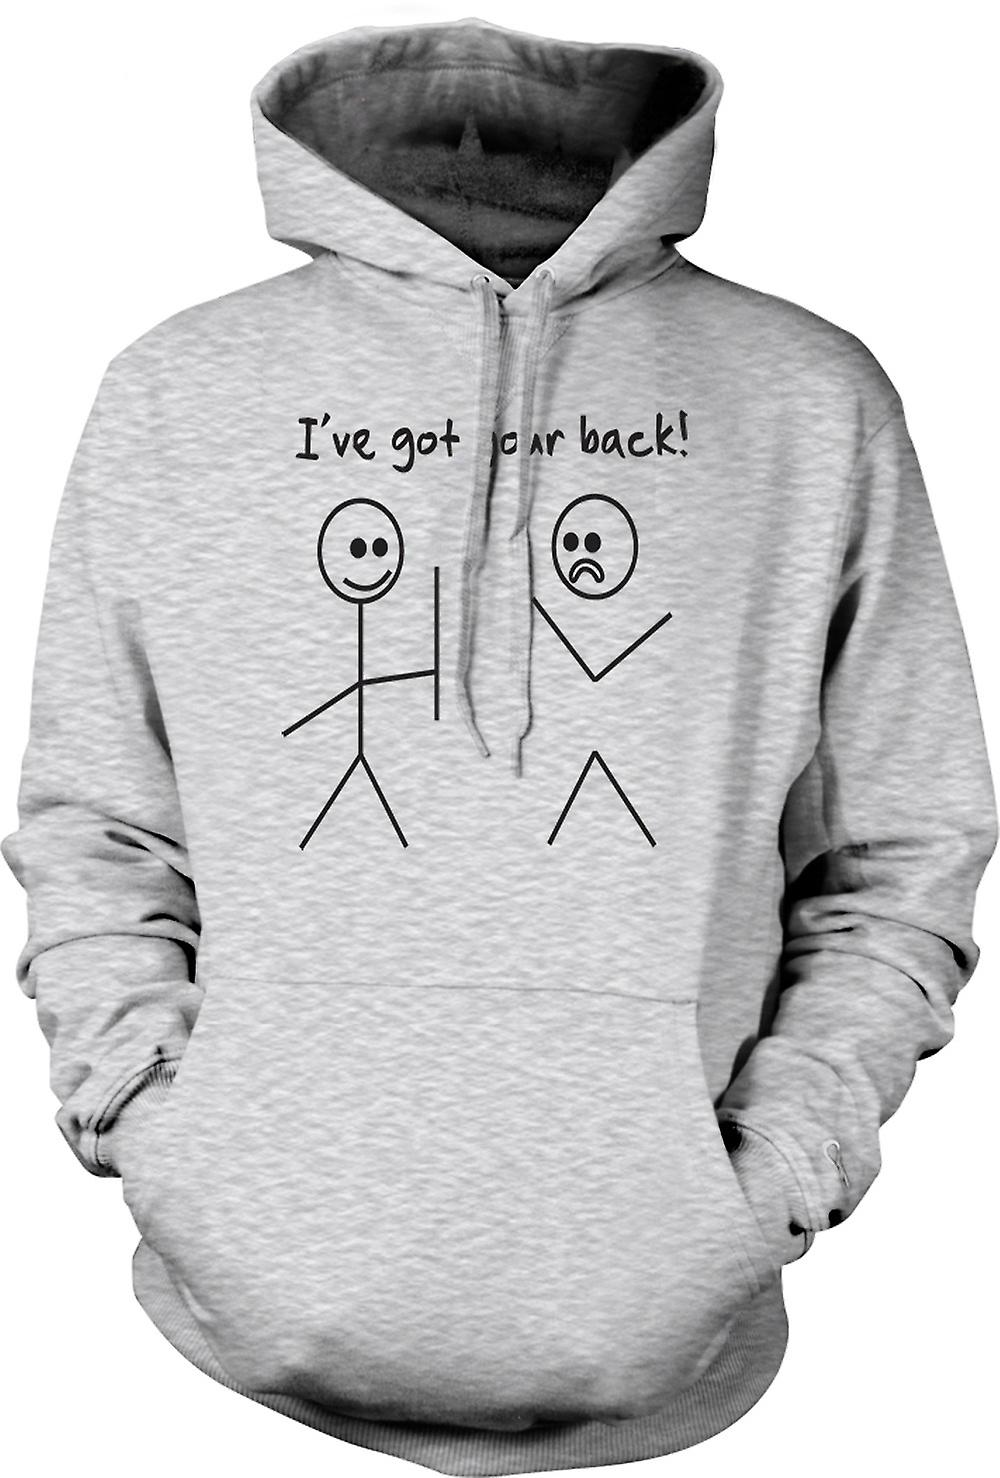 Mens Hoodie - Stickmen, Ive Got Your Back - Quote